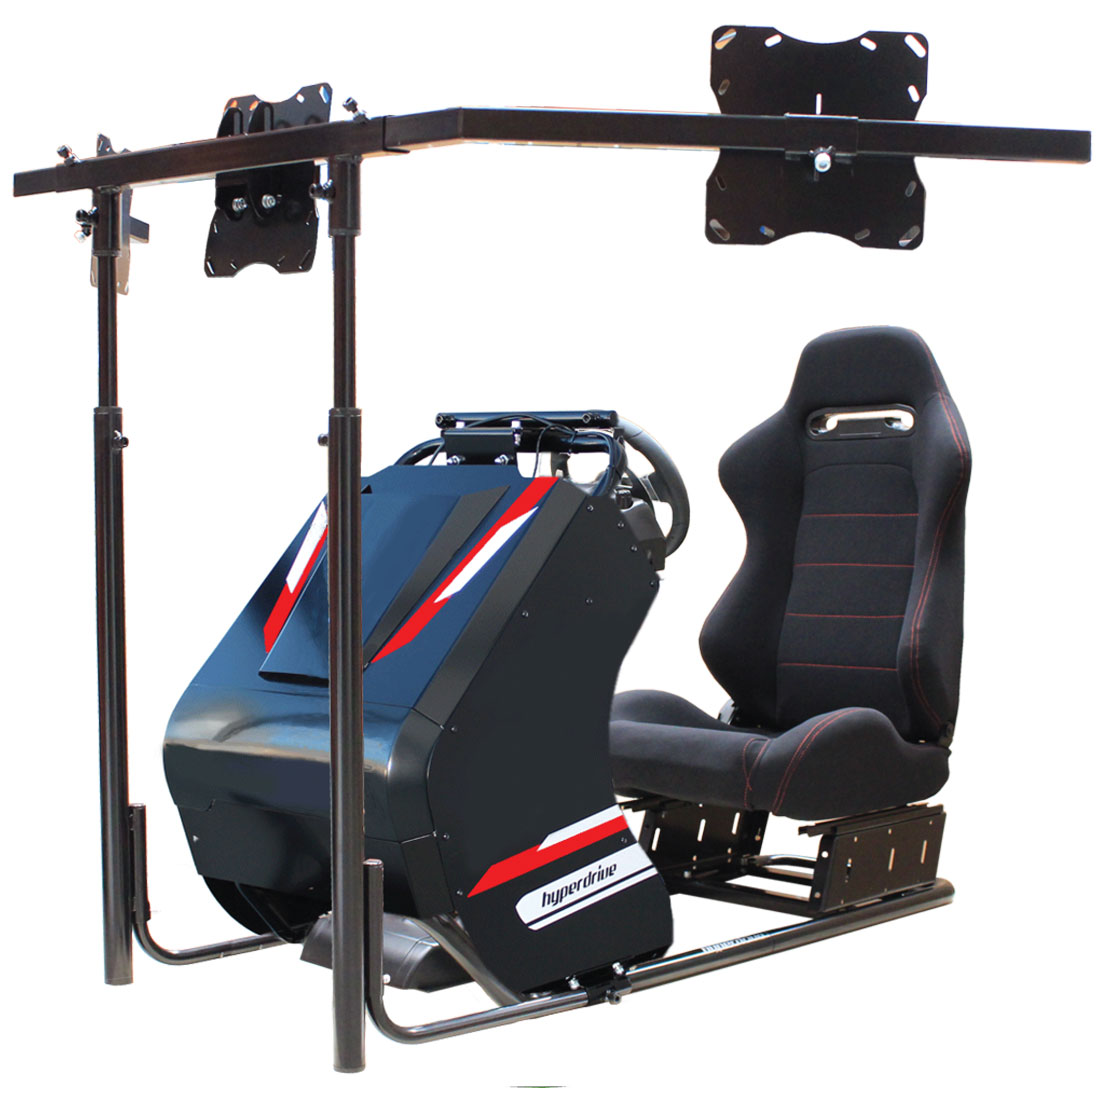 RACING SIMULATOR<br>D-RS 300BC – S2